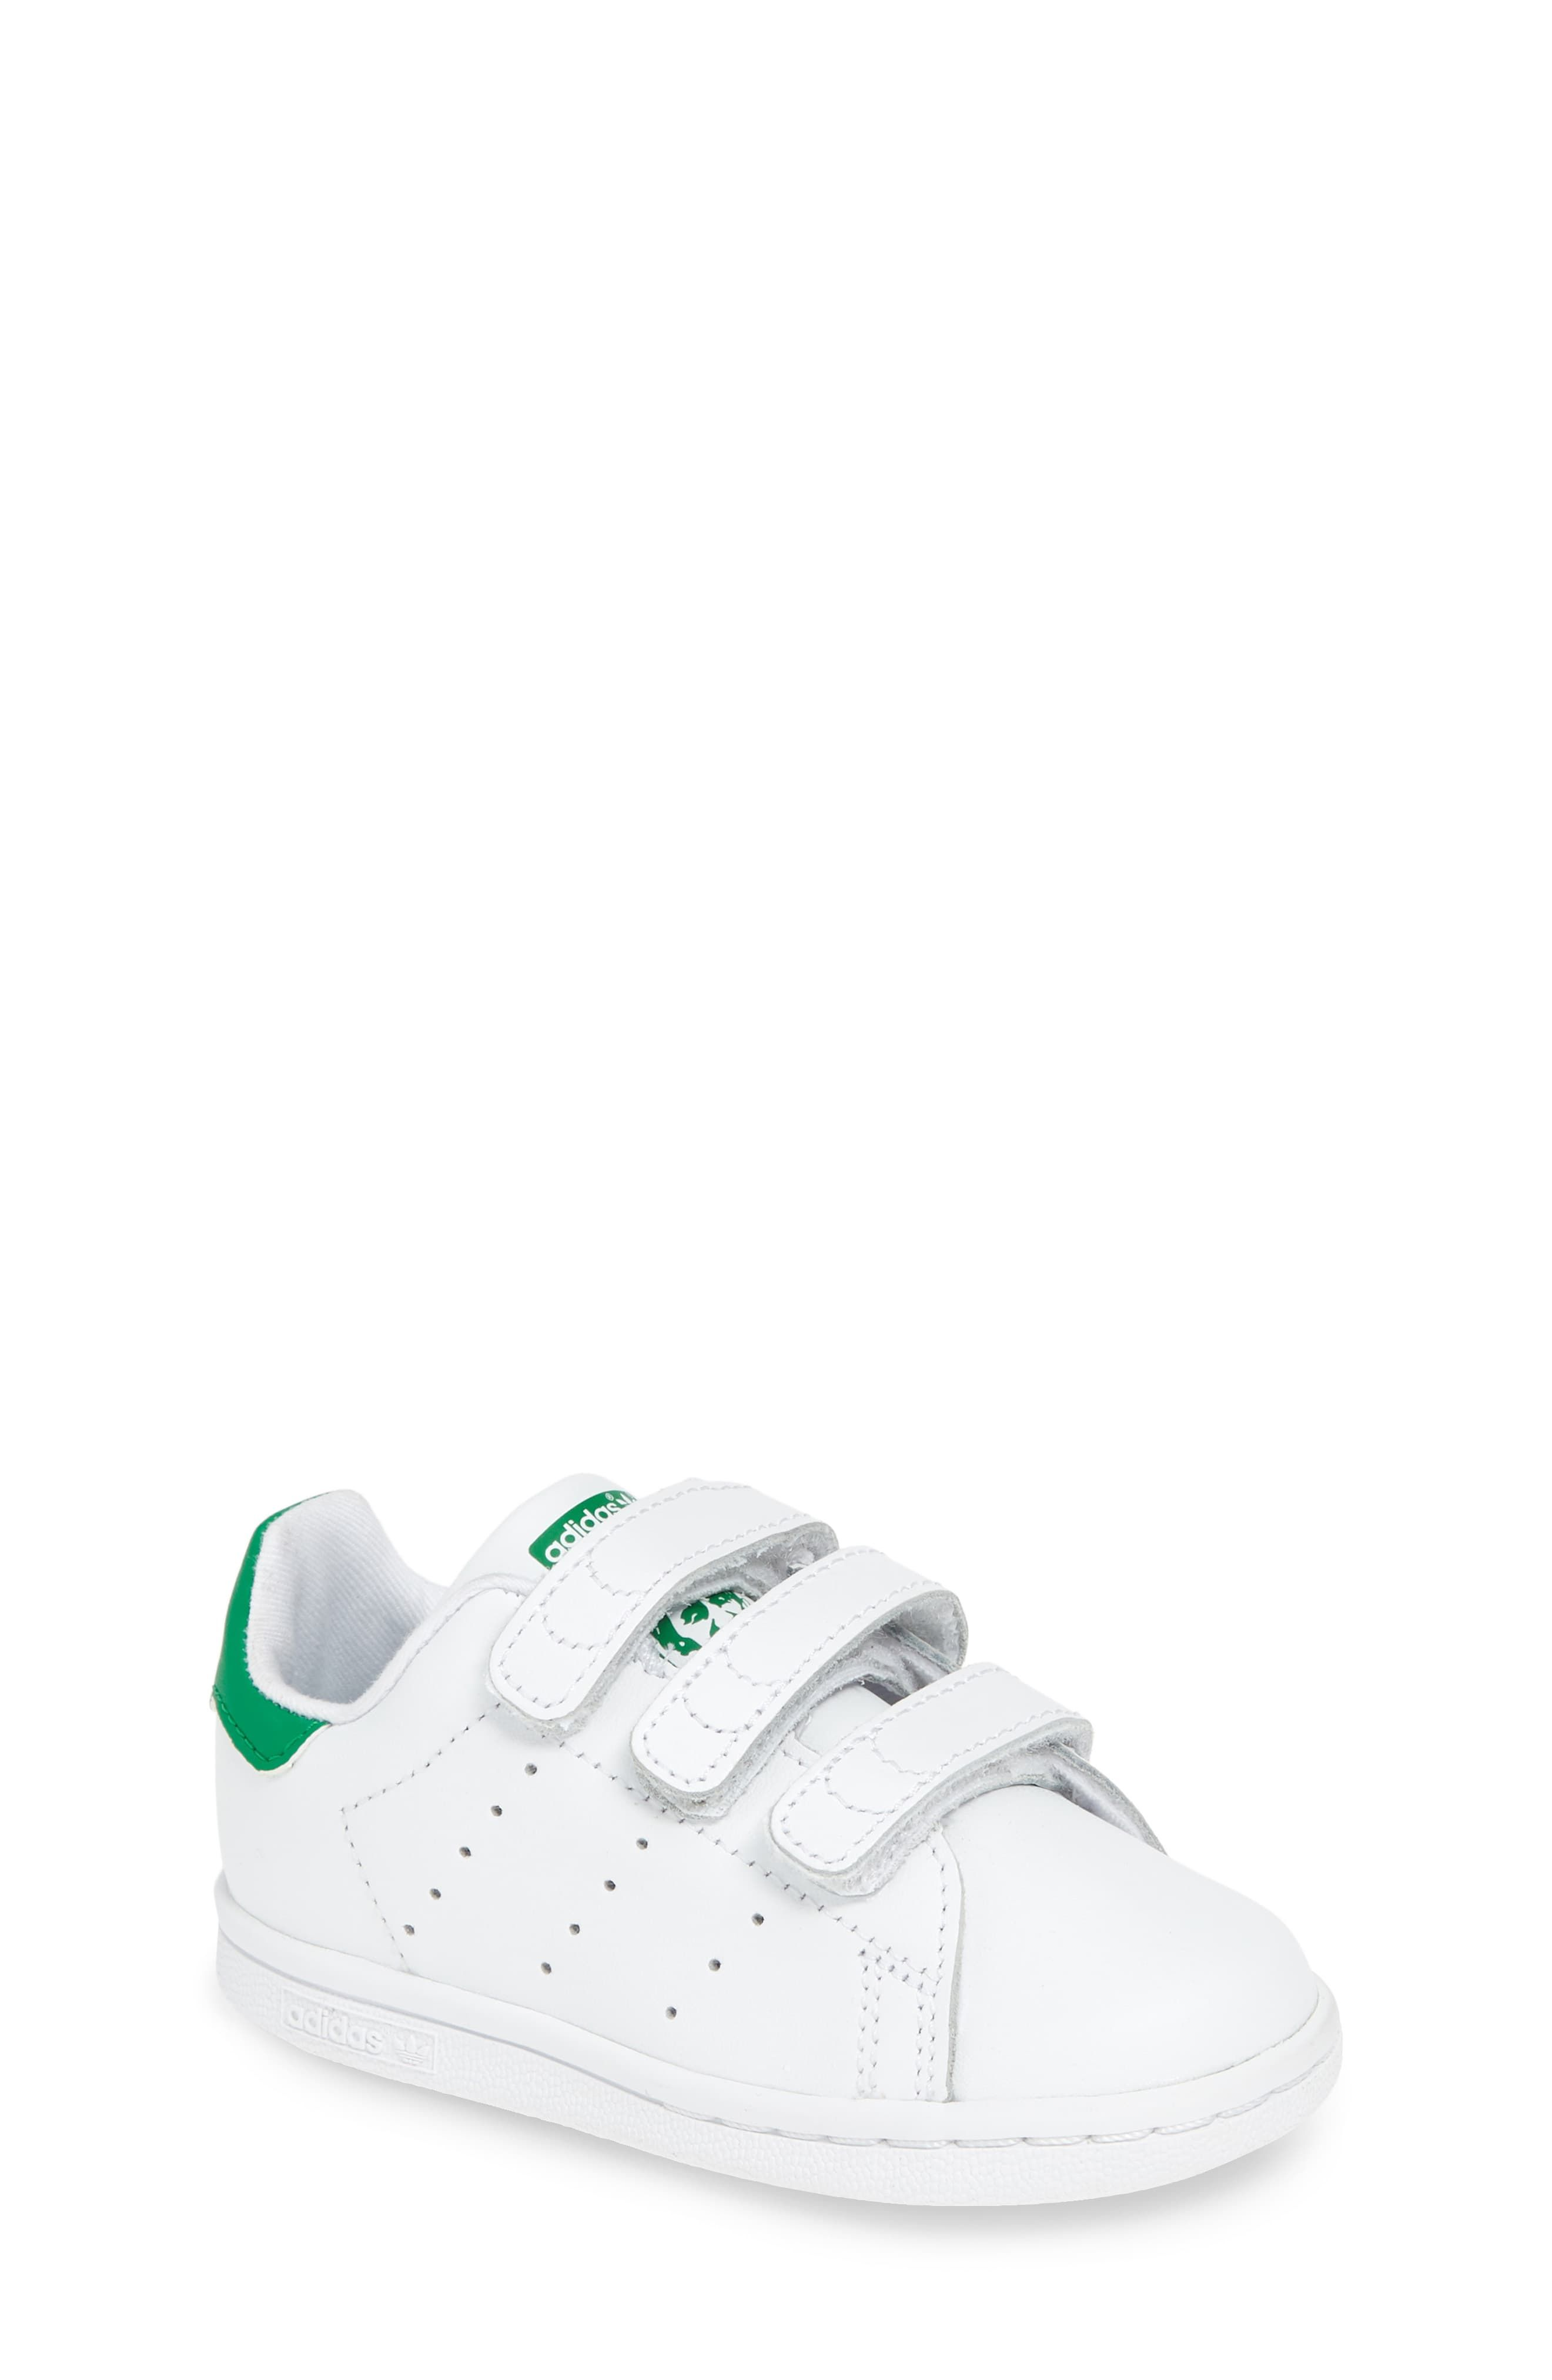 competitive price edd0c a3590 Toddler Adidas Stan Smith Sneaker, Size 10 M - White in 2019 ...